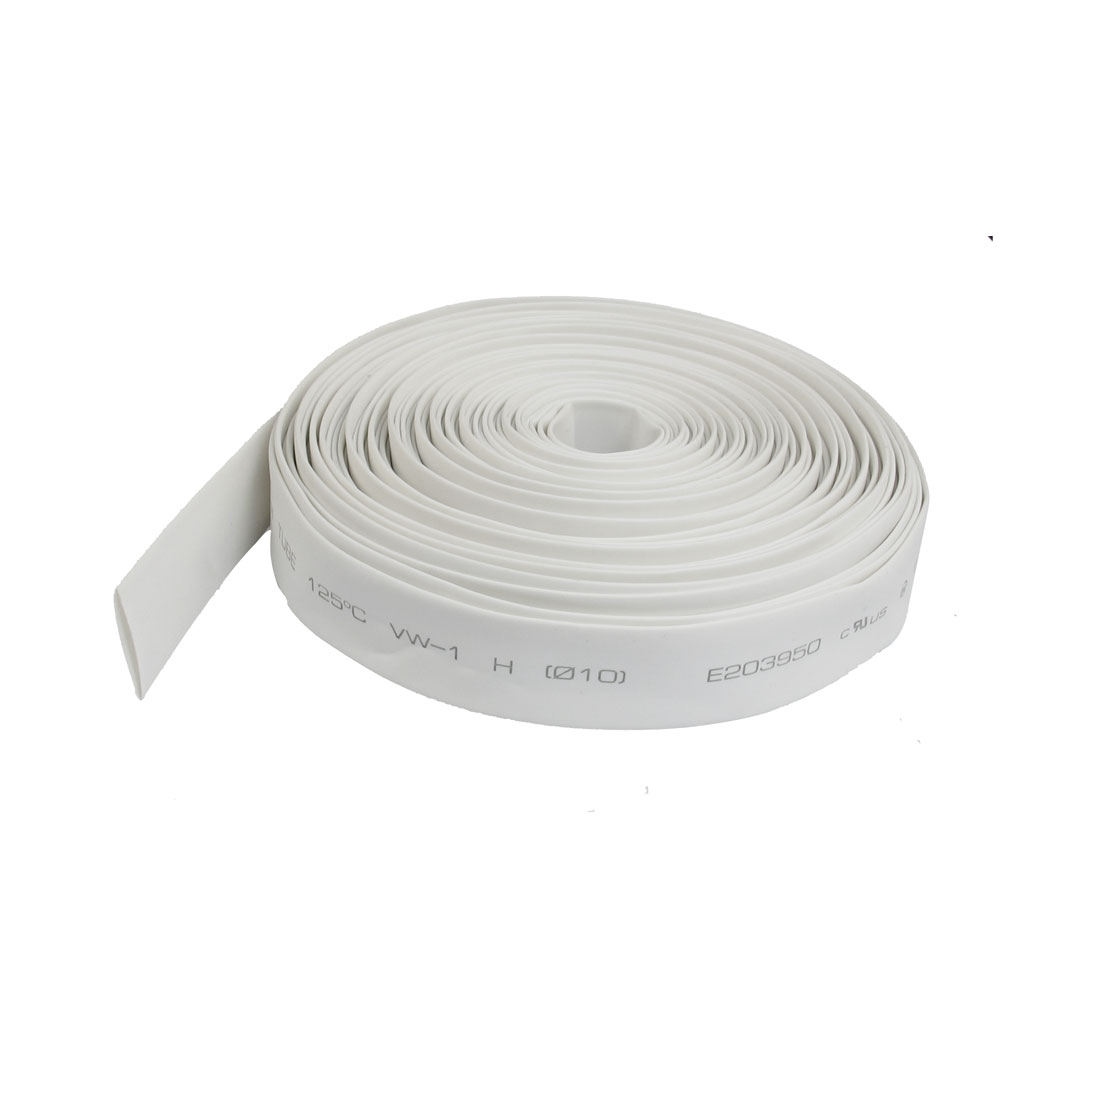 Ratio 2:1 10mm Dia White Polyolefin Heat Shrinkable Tube 10M 32.8ft